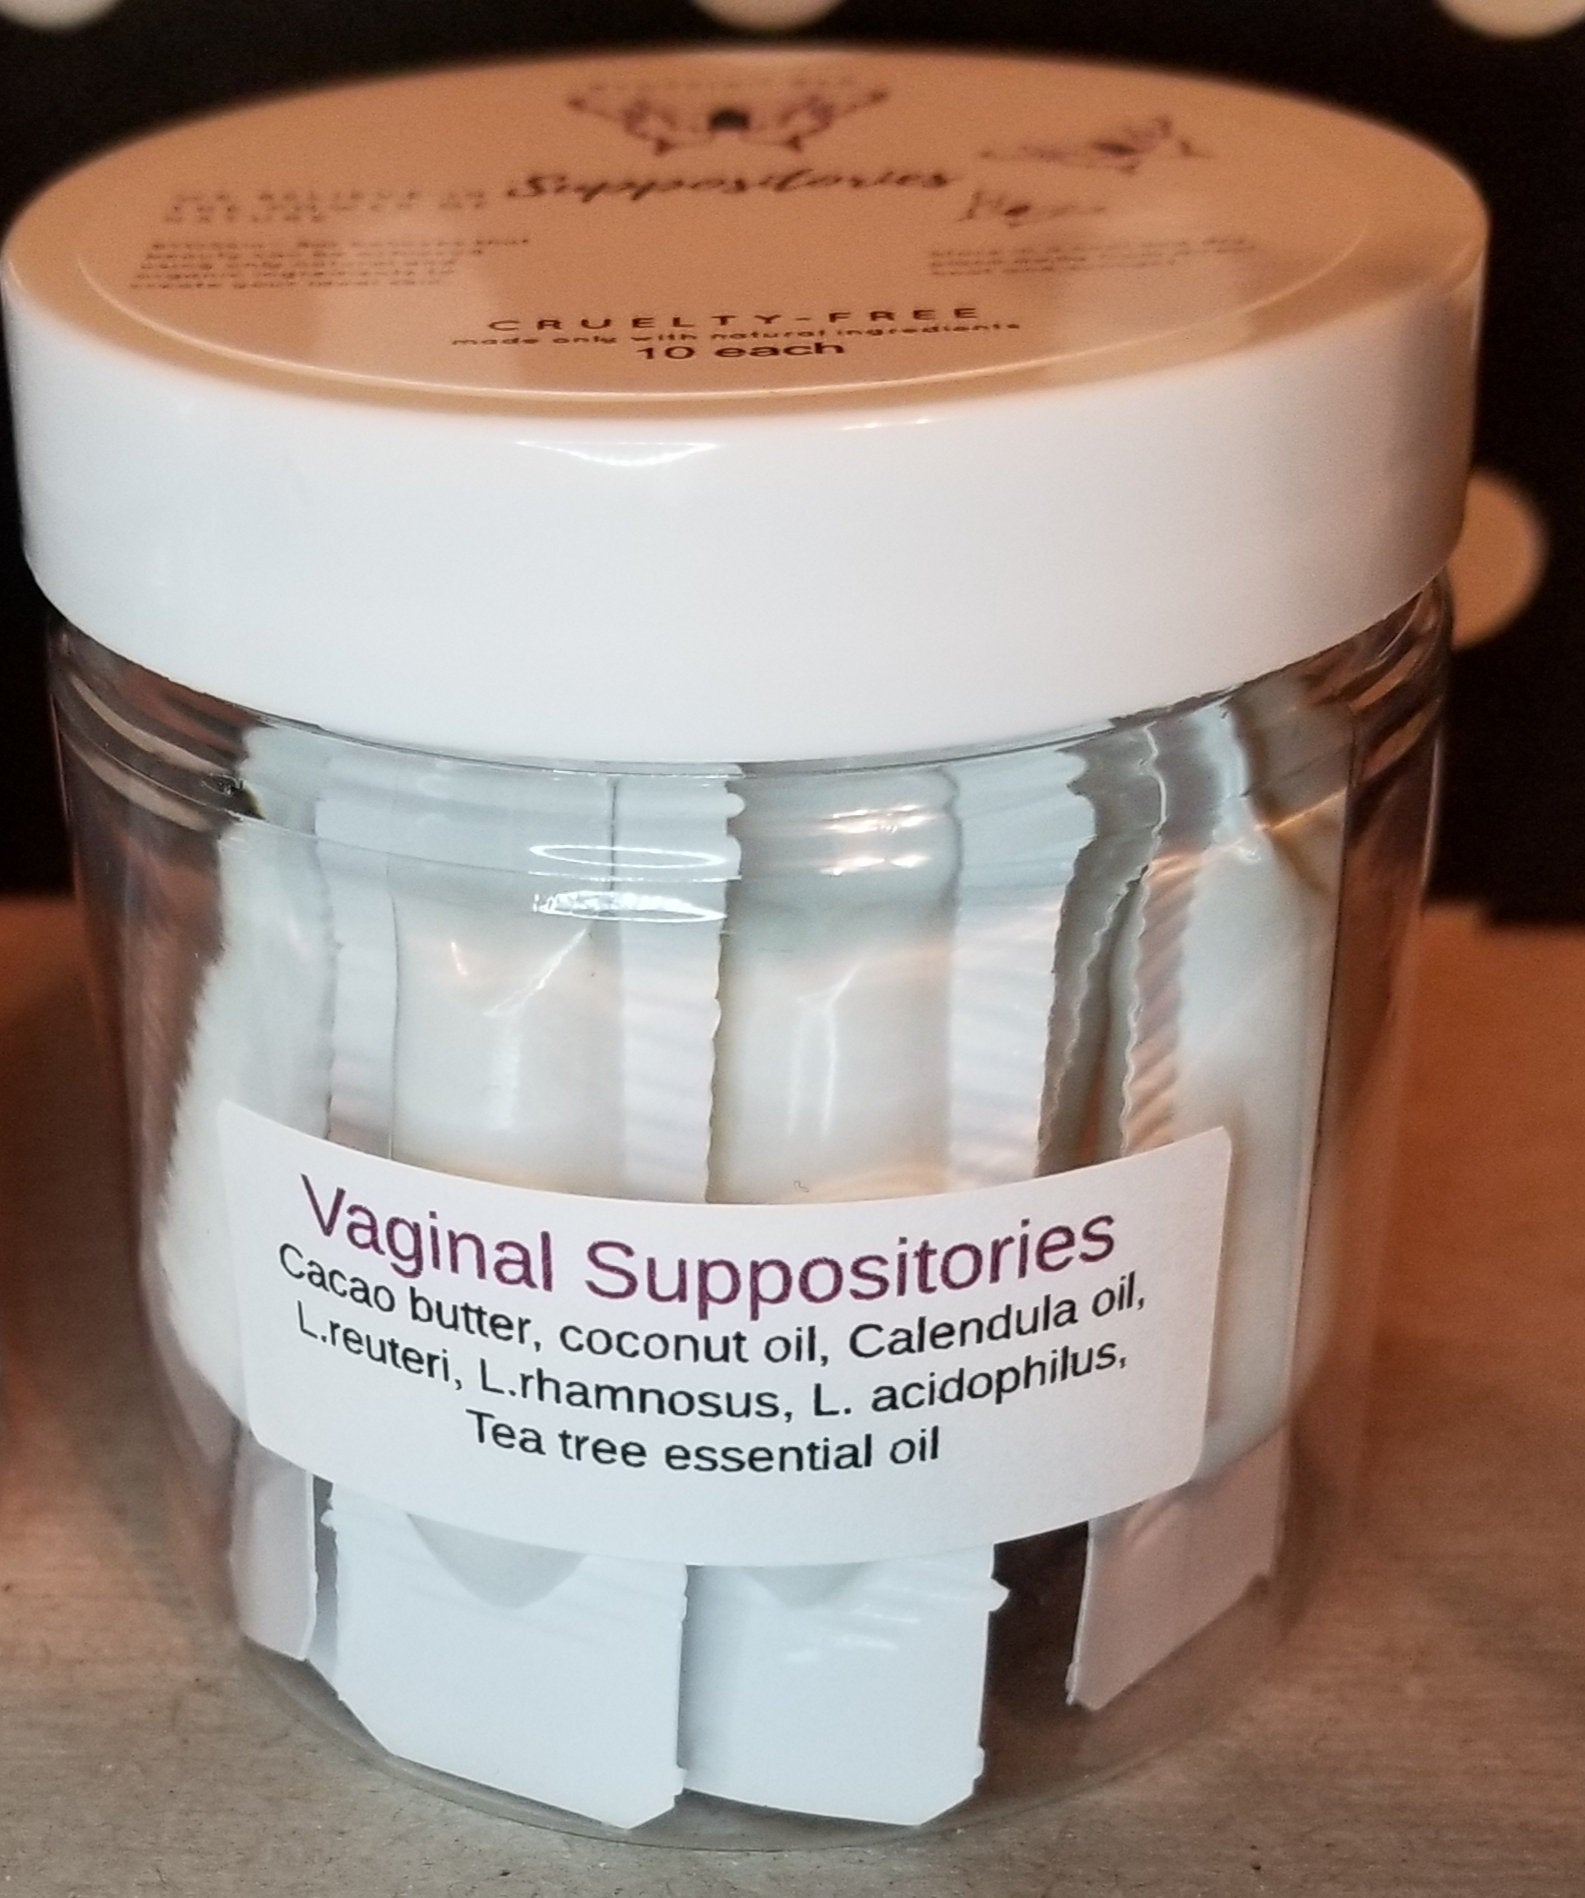 Probiotic Vaginal Suppository